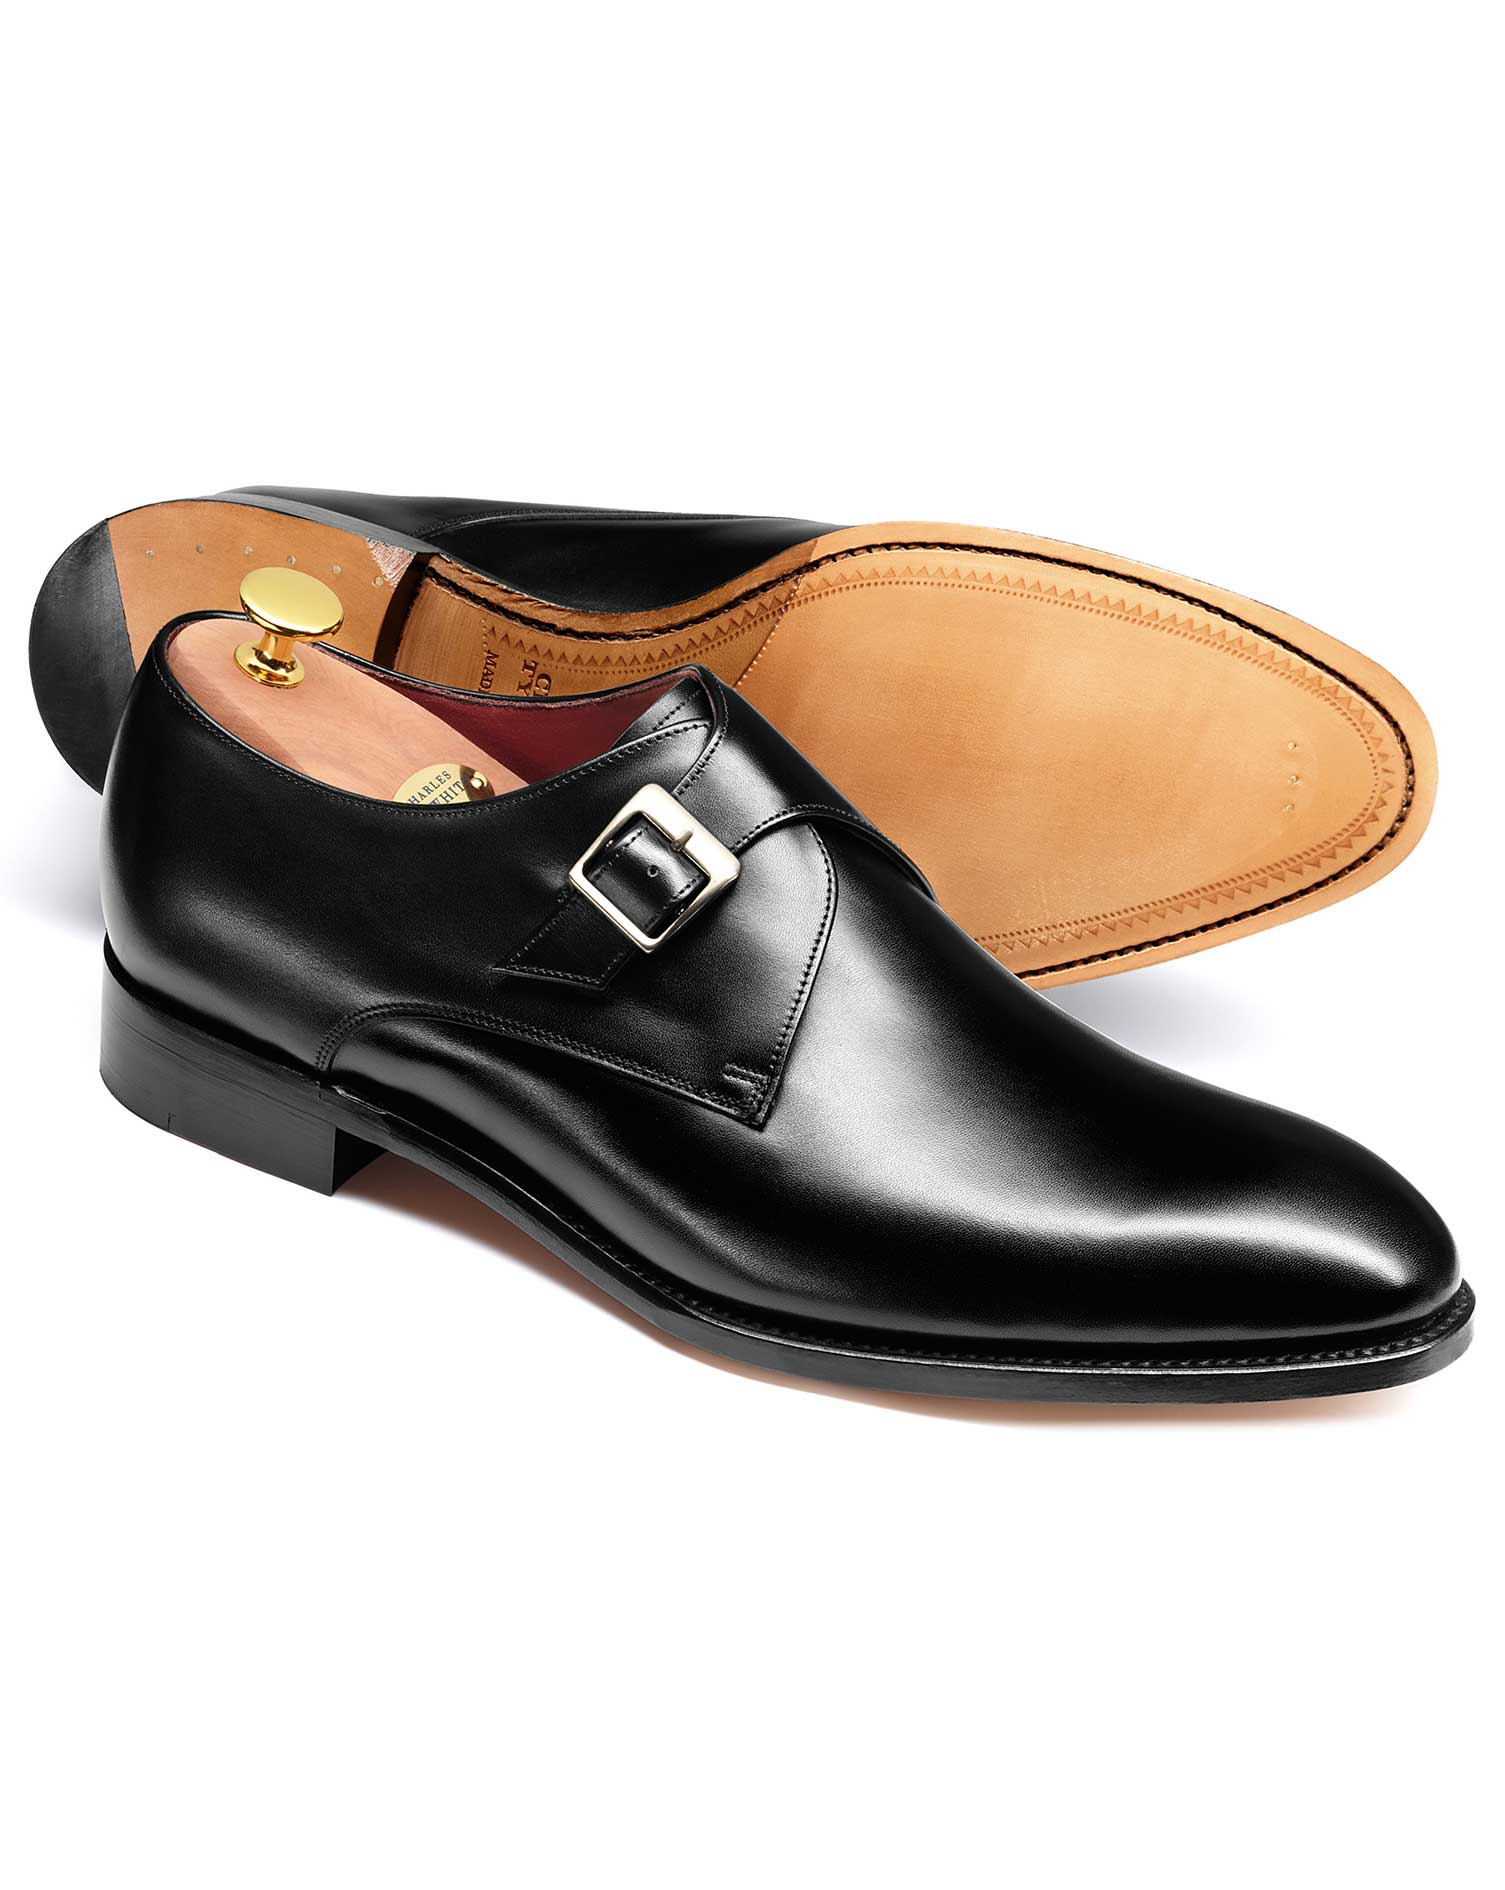 Black Wilcove Calf Leather Monk Shoes Size 9 R by Charles Tyrwhitt